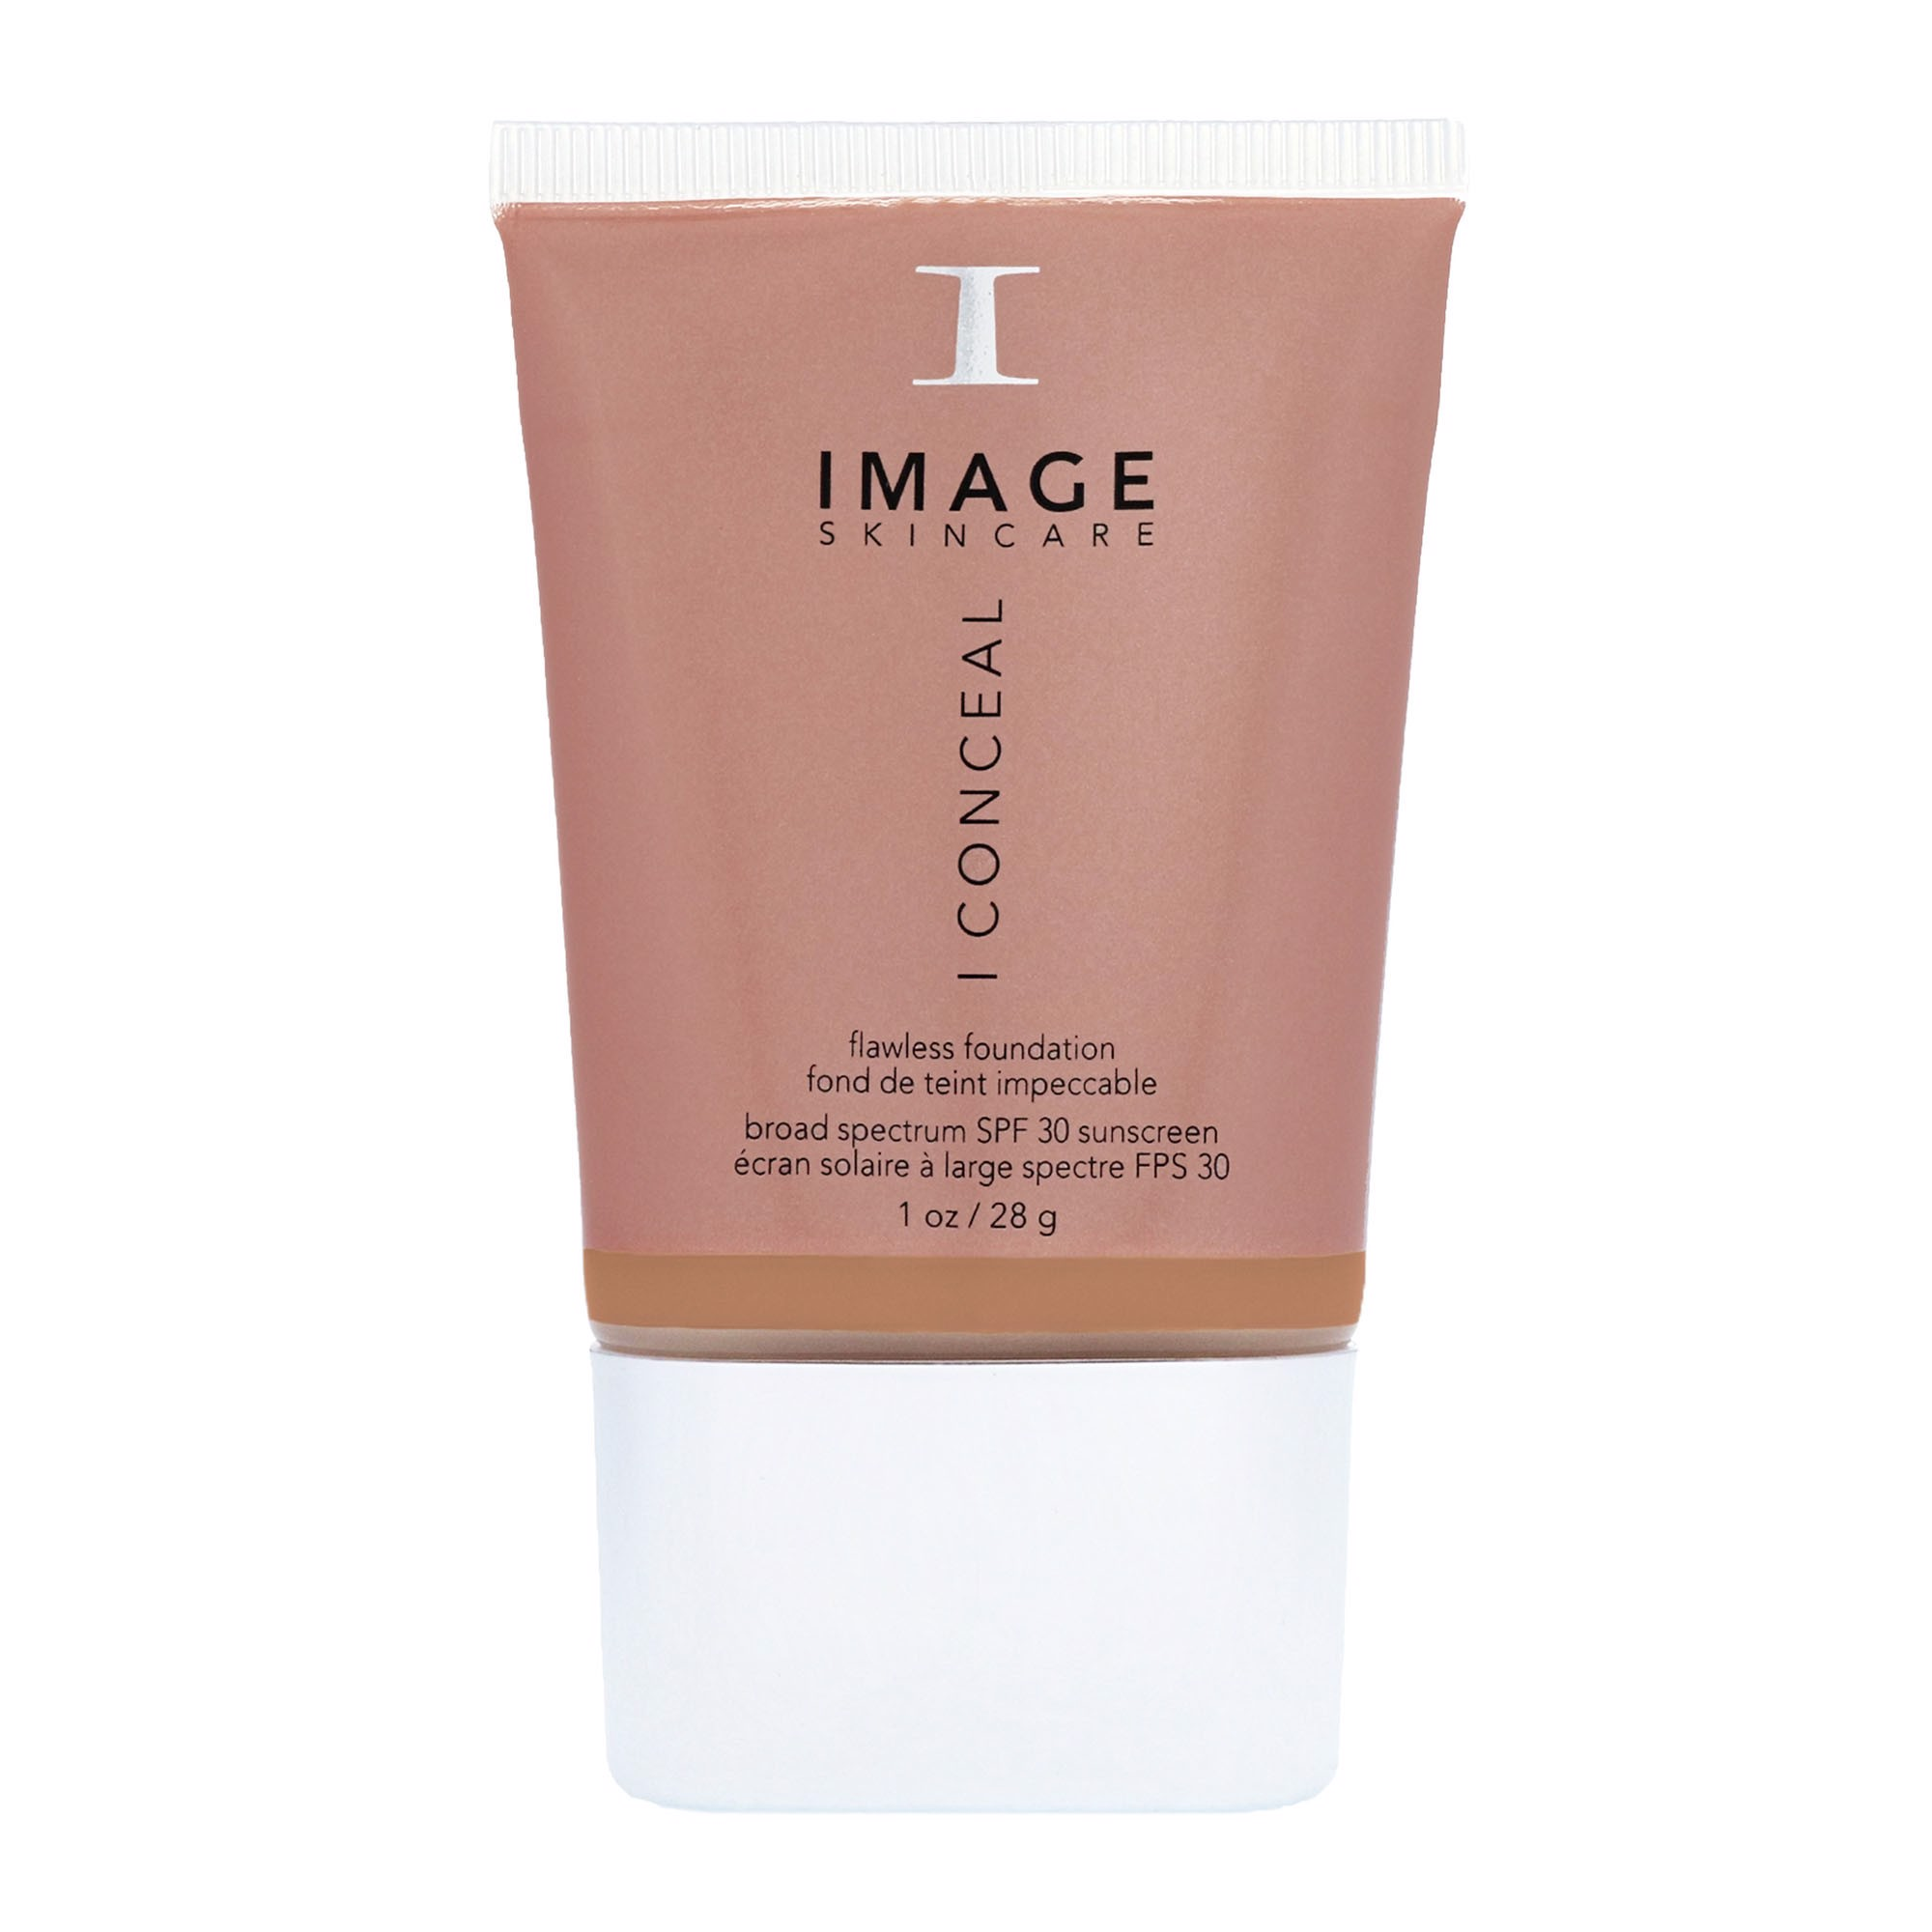 Kem nền che khuyết điểm SPF 30 Image Skincare I CONCEAL Flawless Foundation (28g)